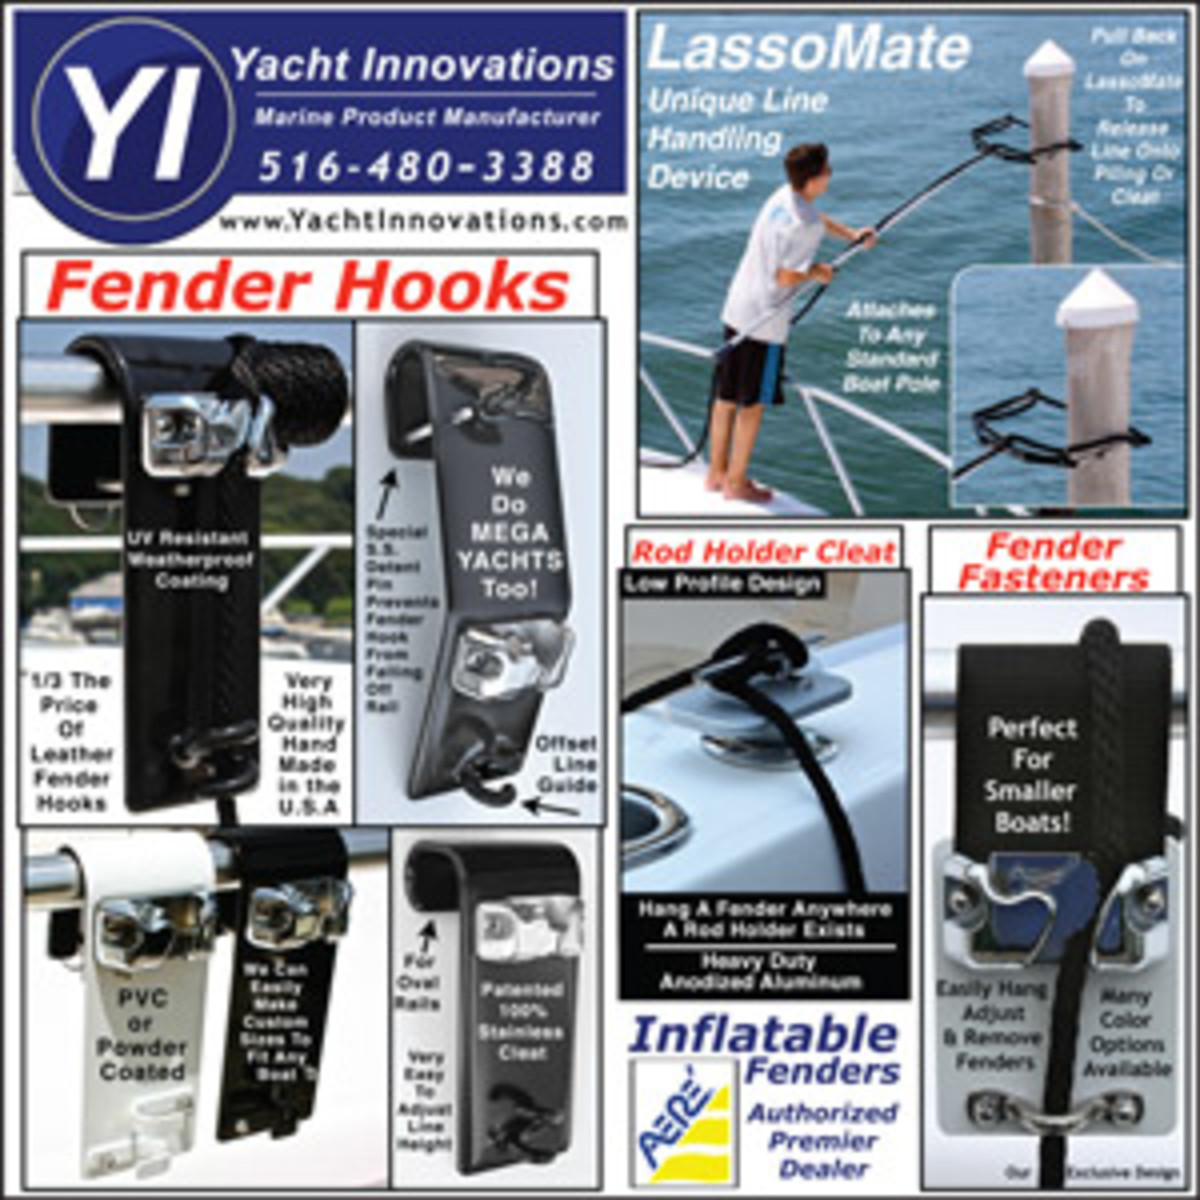 www.yachtinnovations.com